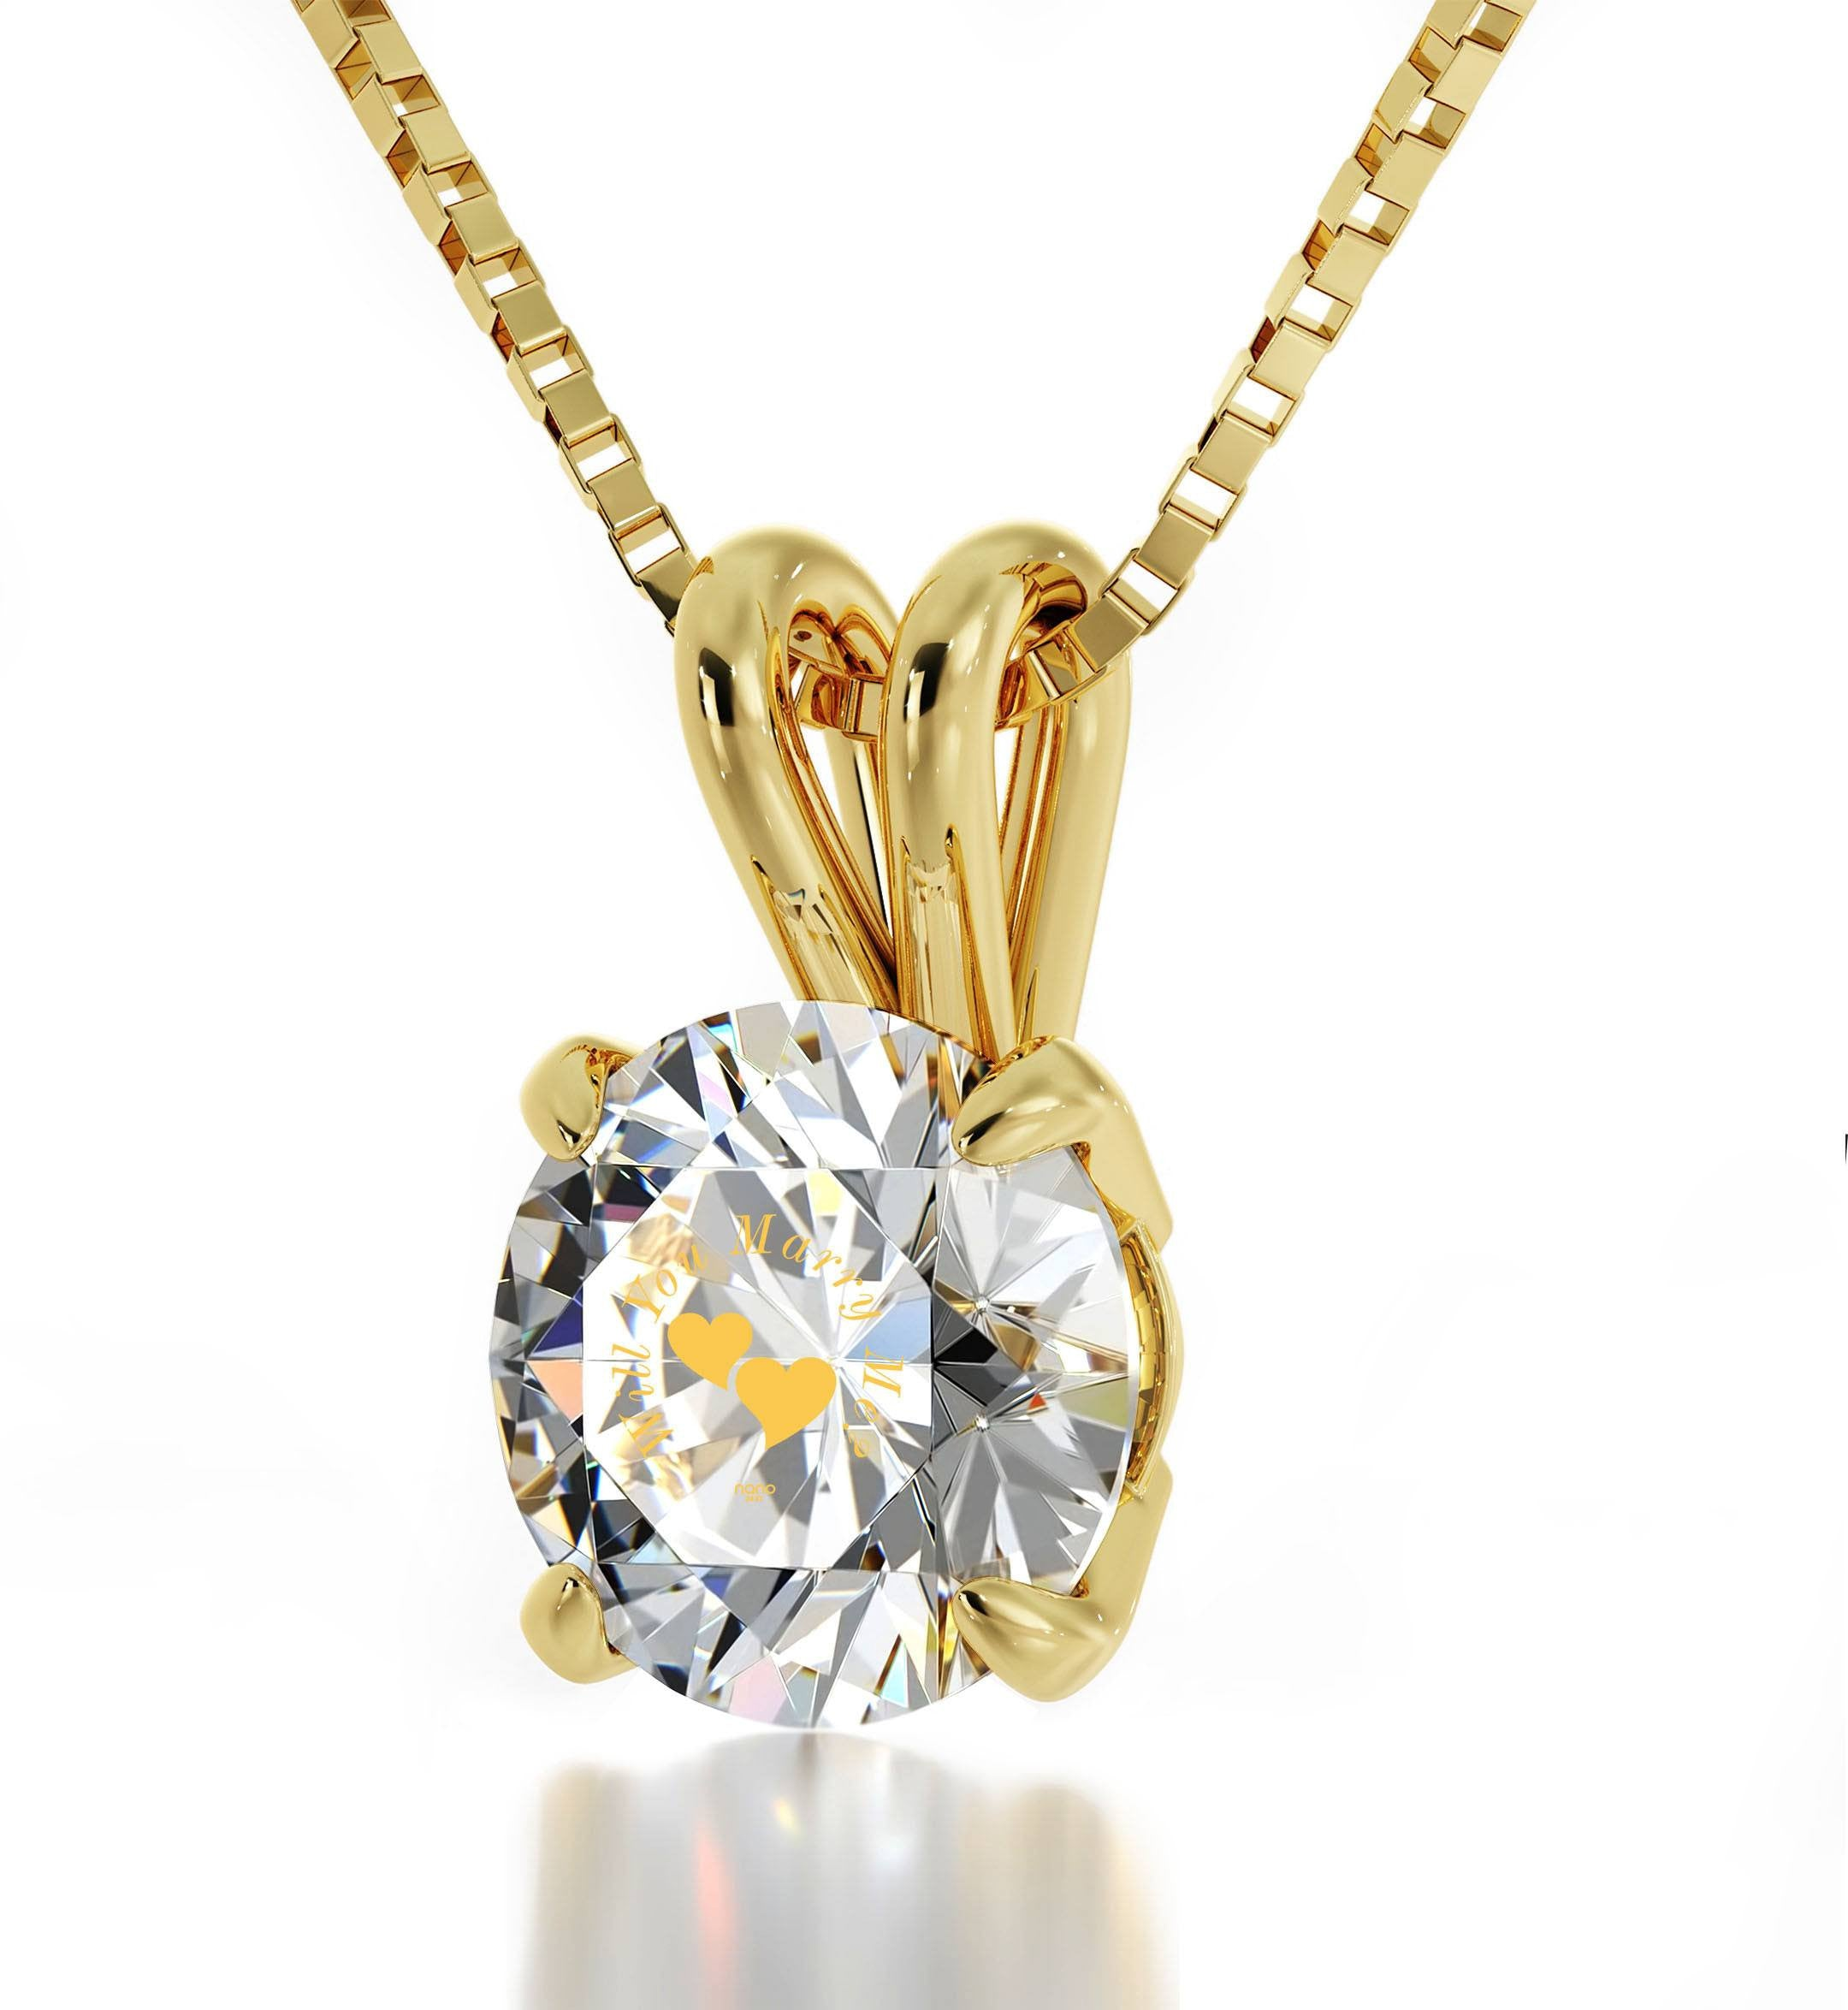 """""Will You Marry Me"" Engraved in 24k Swarovski Crystal, Romantic Way to Propose, The Love Necklace, 14k Gold Solitaire"""